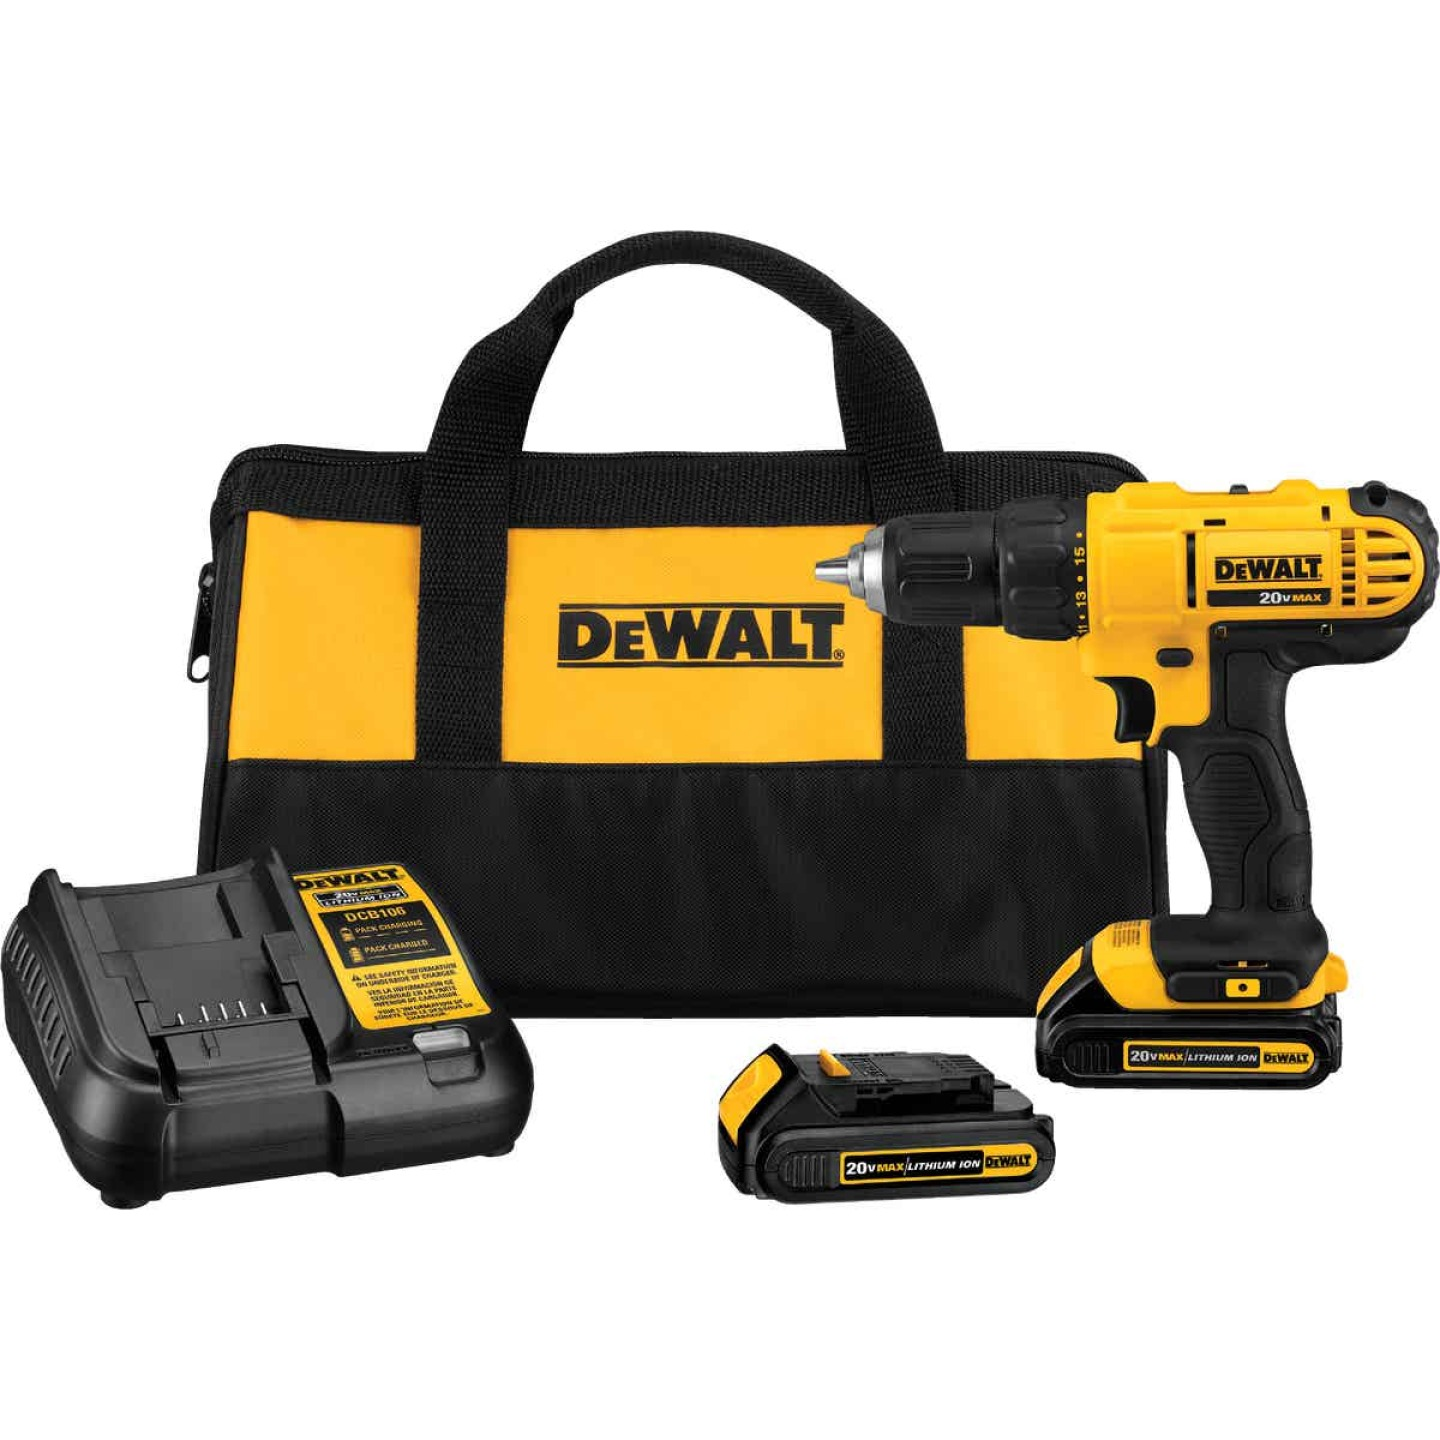 DeWalt 20 Volt MAX Lithium-Ion 1/2 In. Cordless Drill Kit Image 1